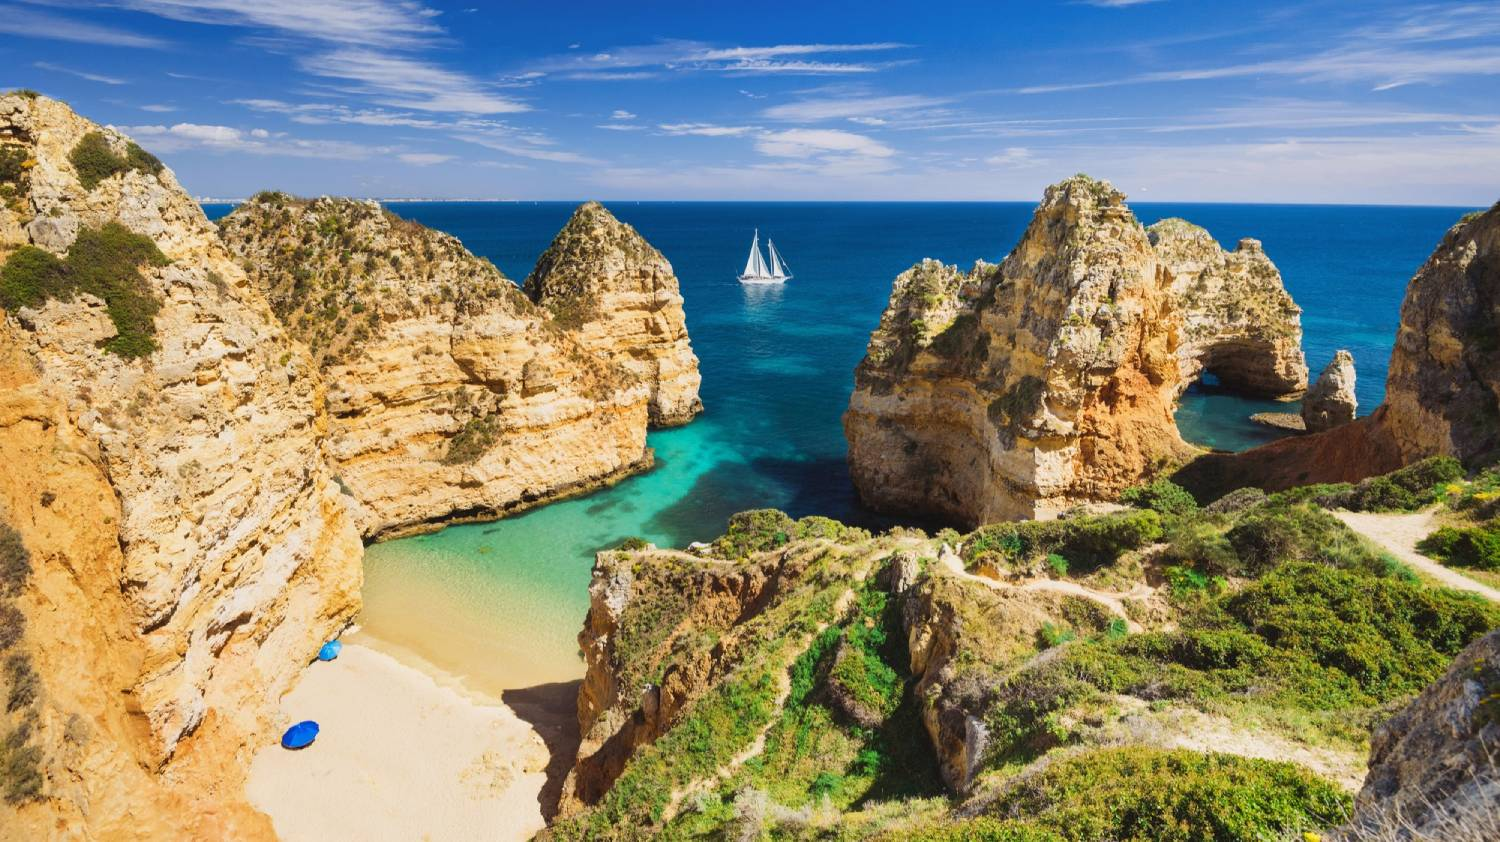 Lagos - The Best Places To Visit In Portugal